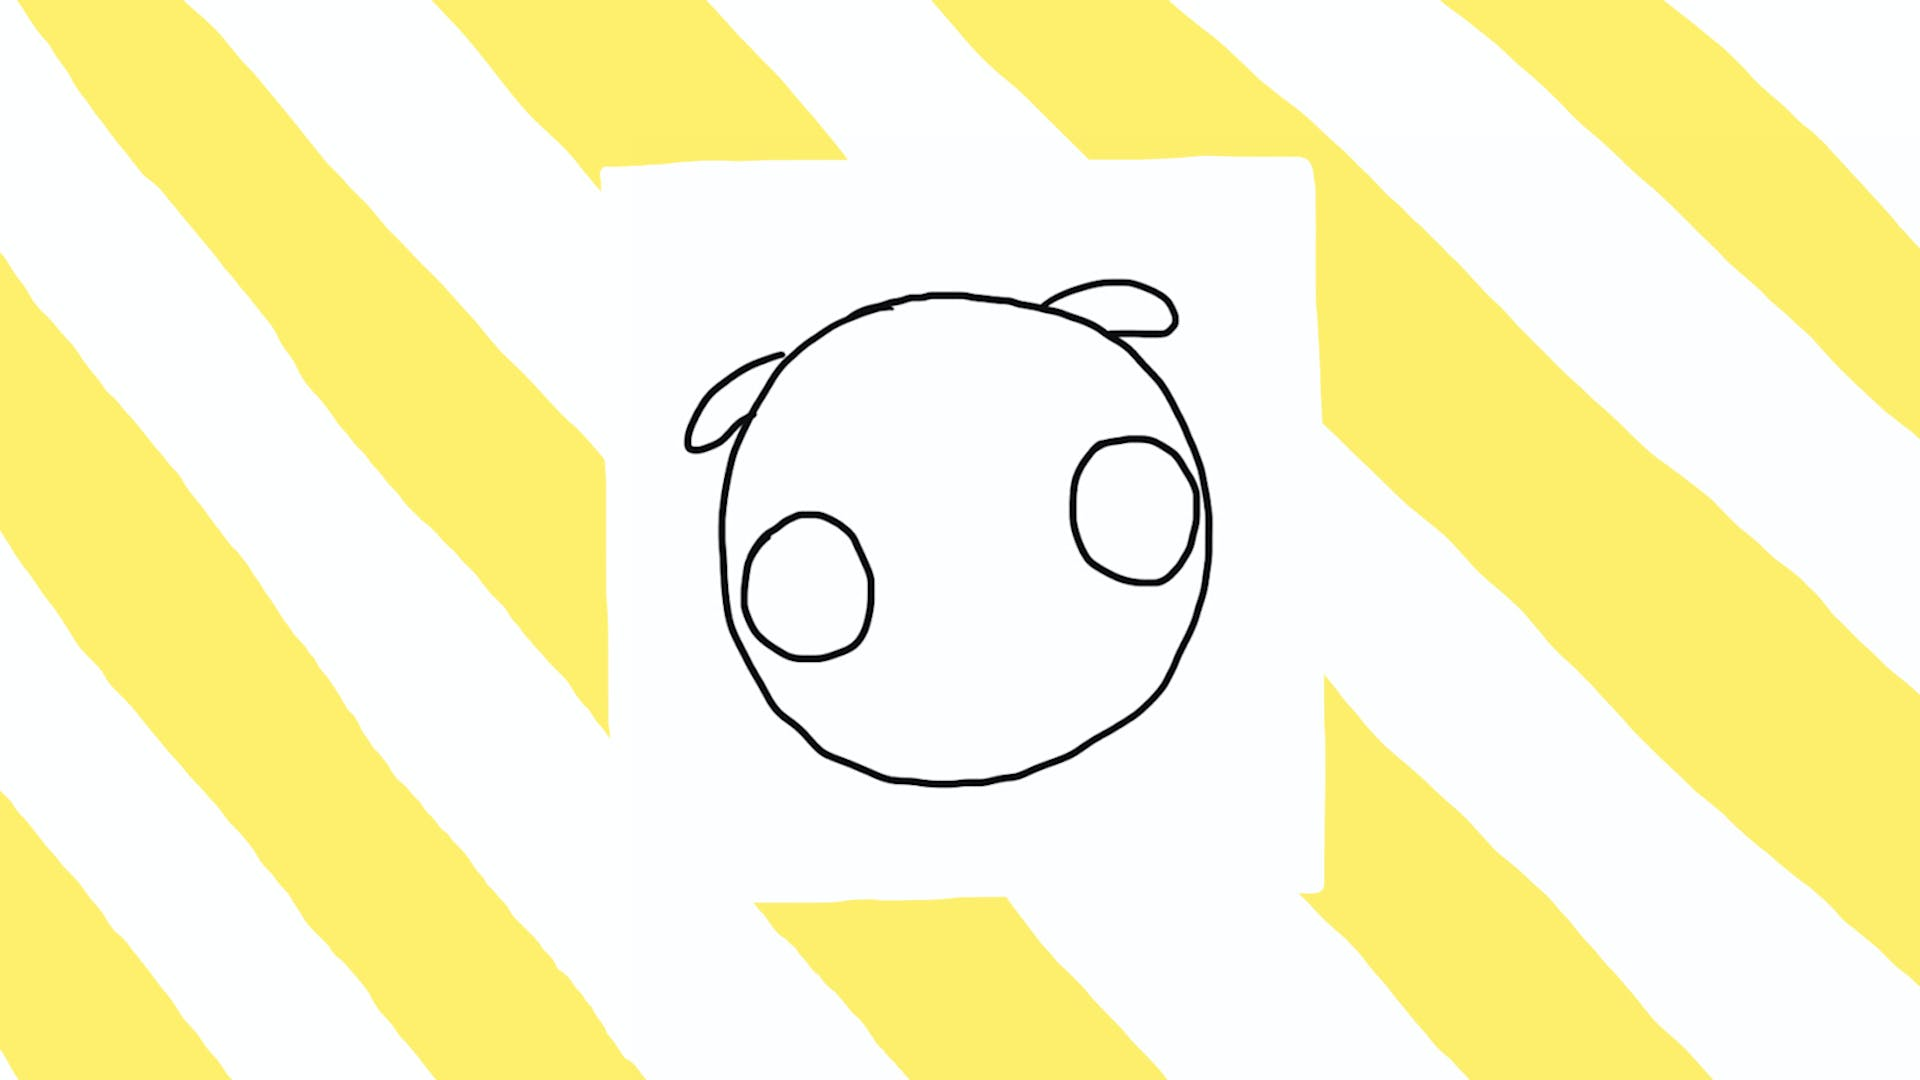 Give your pug two circles